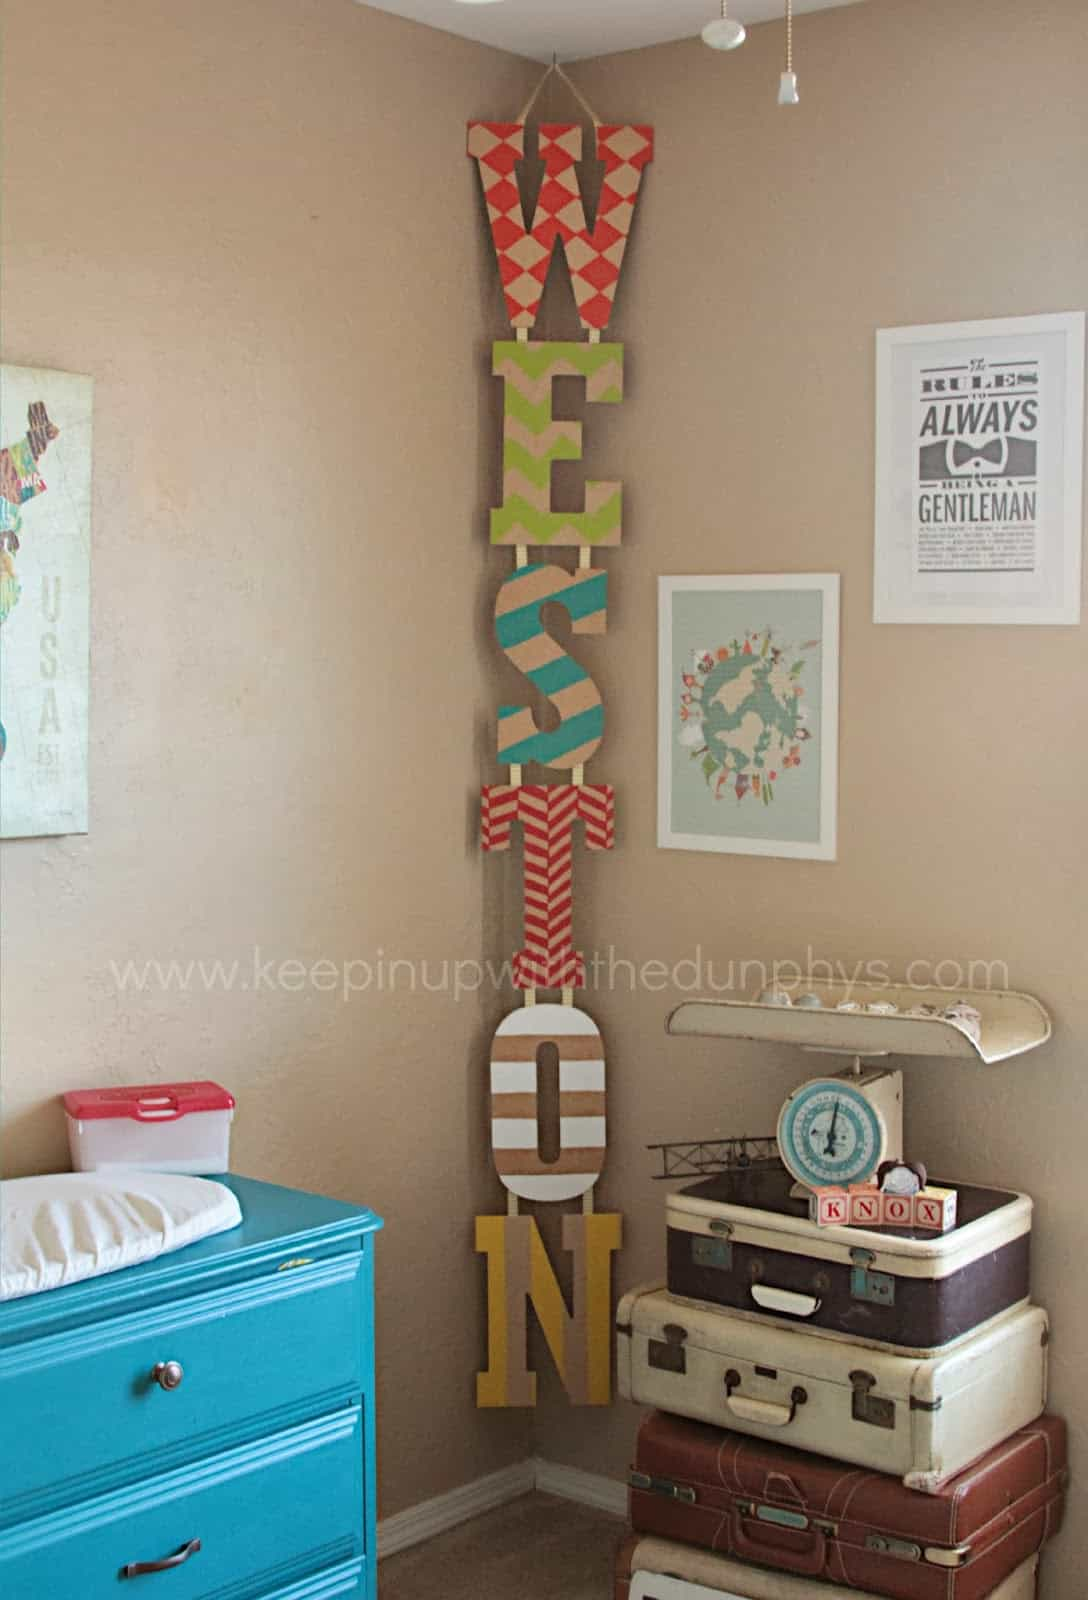 Hand painted vertical wooden letter hanger